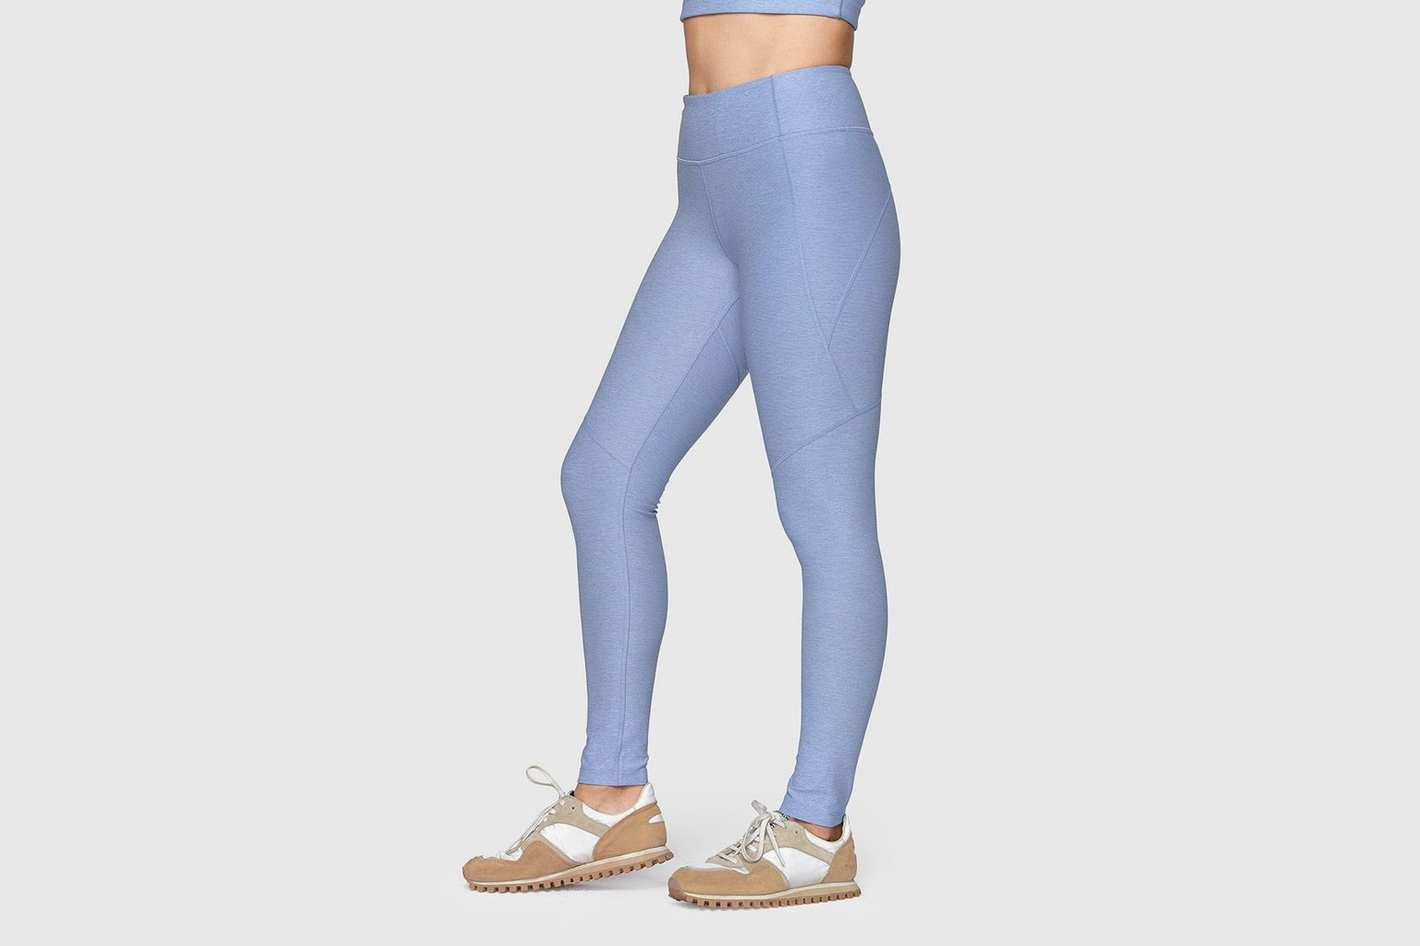 Outdoor Voices 7/8 Warmup Leggings (Lilac)